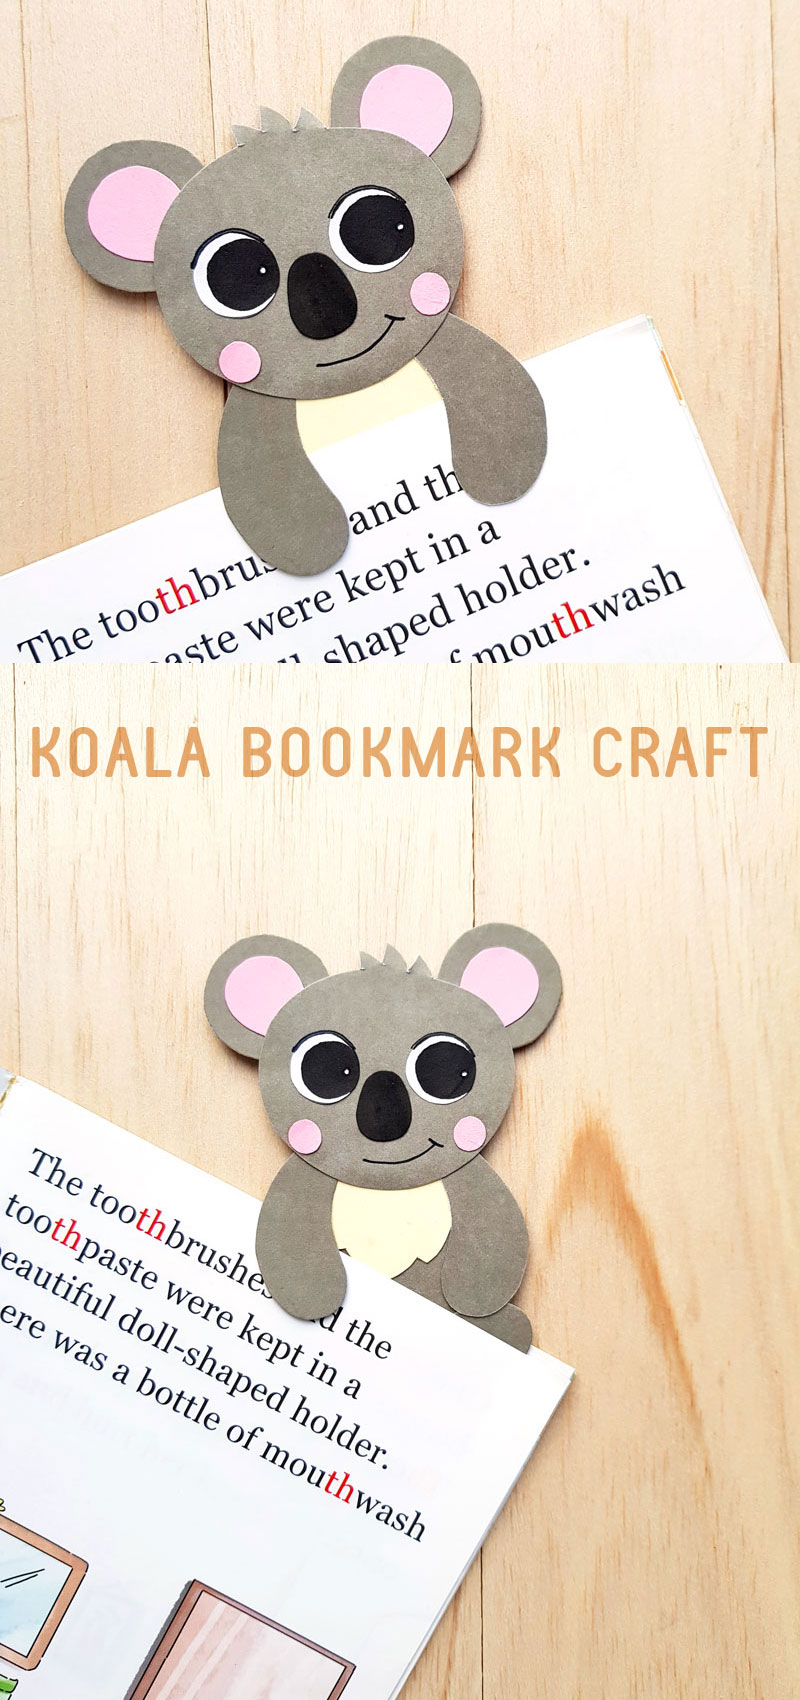 Koala craft - hug bookmarks